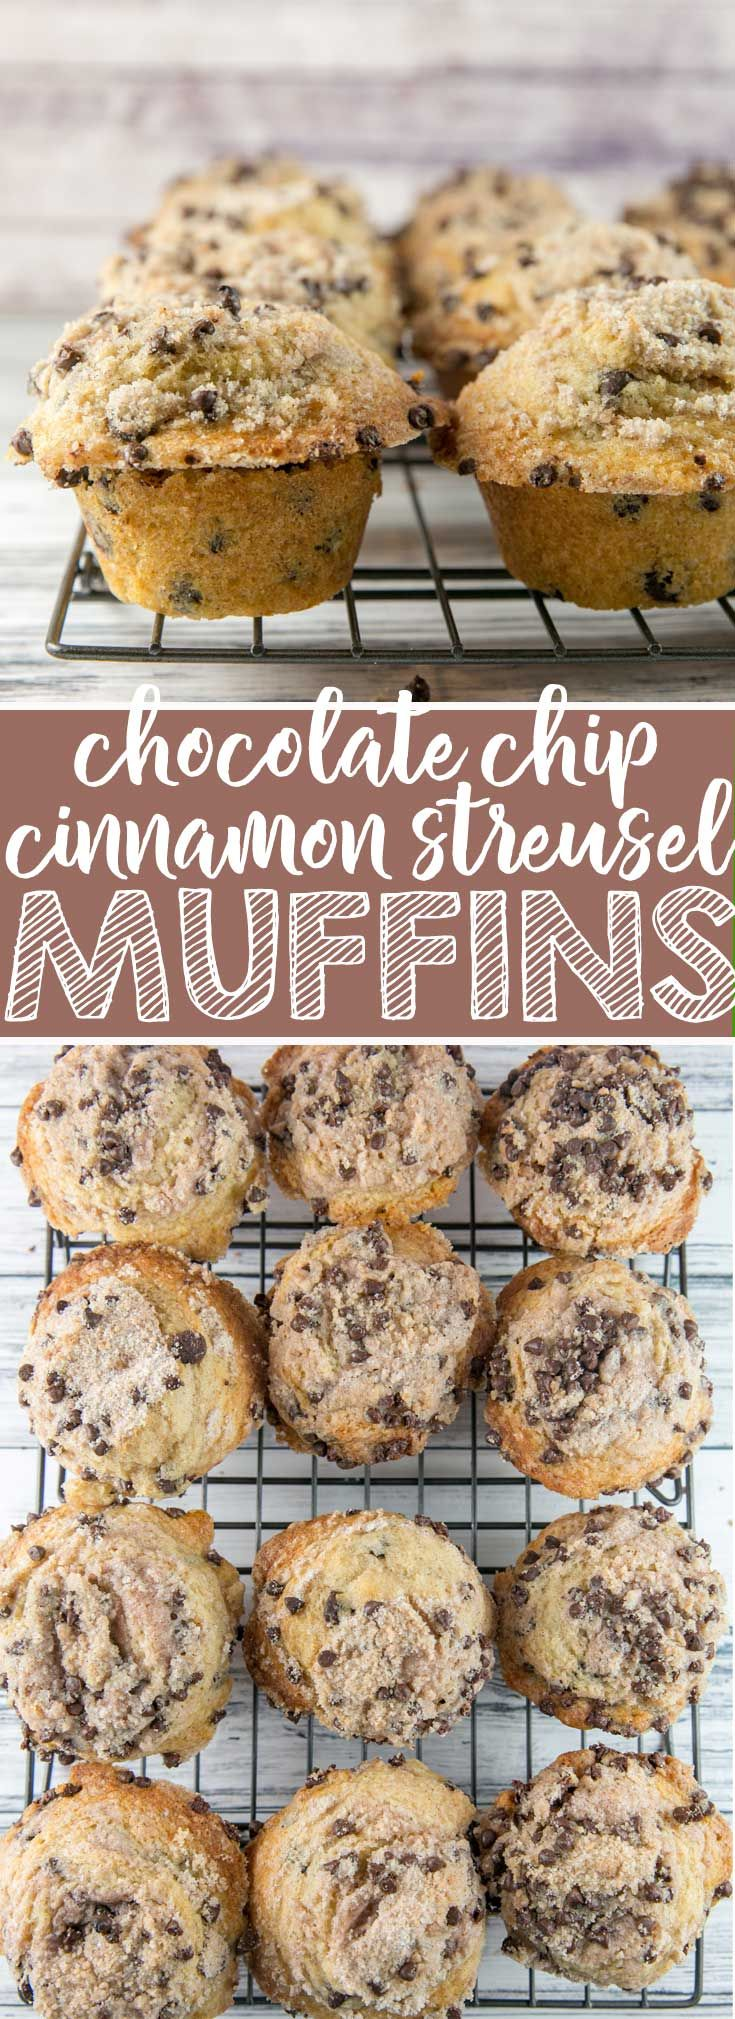 Chocolate Chip Streusel Muffins: filled with chocolate chips and covered with a crunchy, chocolatey streusel topping, these muffins are perfect any time of day.  Plus tips for baking jumbo-sized bakery style muffins at home! {bunsenburnerbakery.com} #muffins #chocolatechips  via @bnsnbrnrbakery